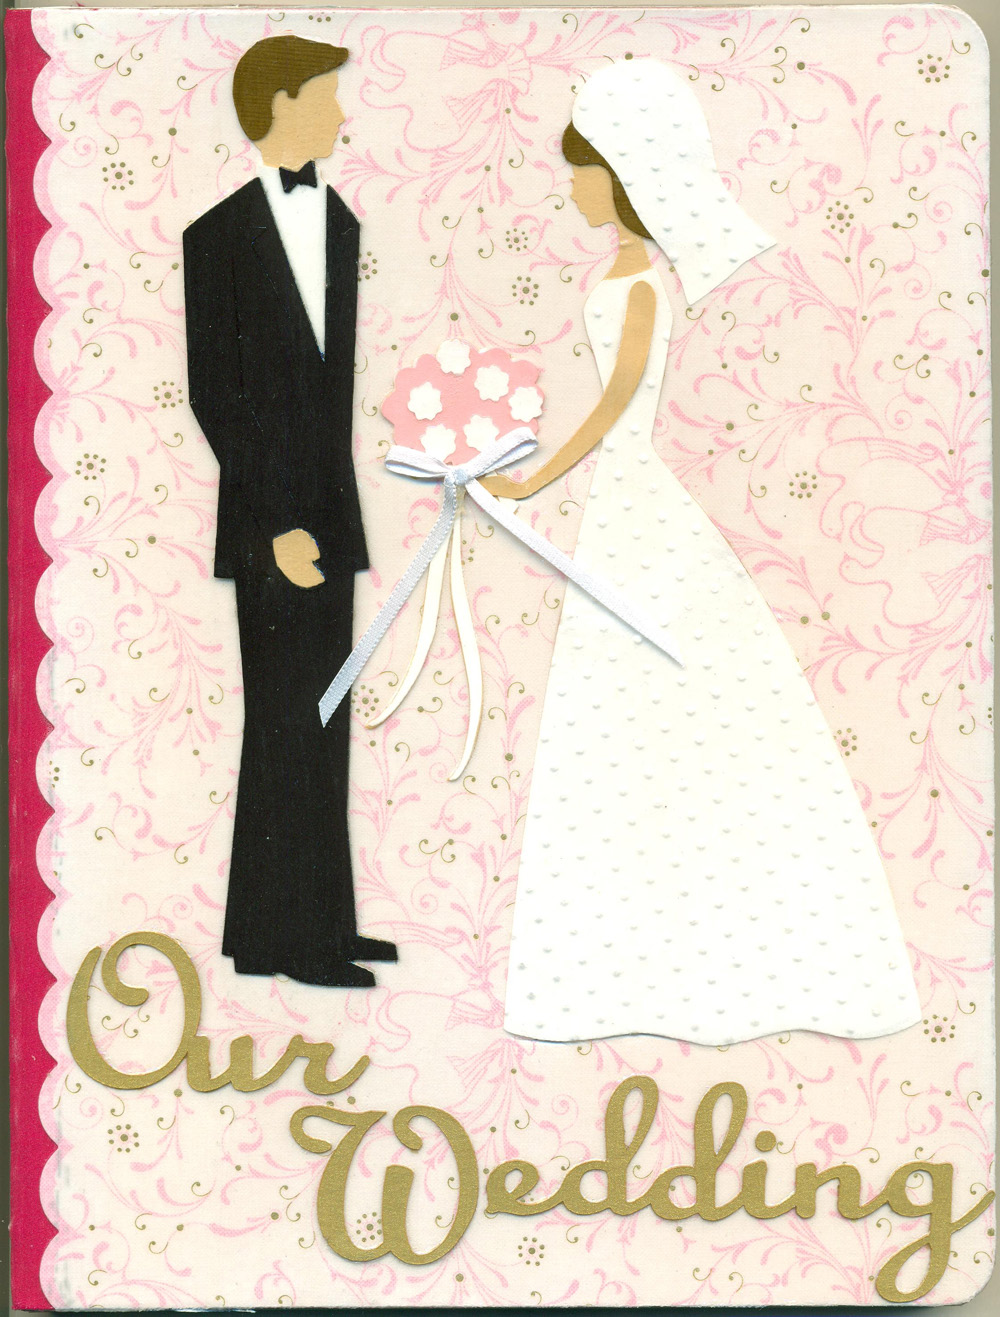 Fantabulous cricut challenge blog fantabulous friday 165 wedding - The 67 Best Images About Scrapbooking Cricut Sweethearts On Pinterest Valentine Day Cards Cricut Wedding And Cricut Cards